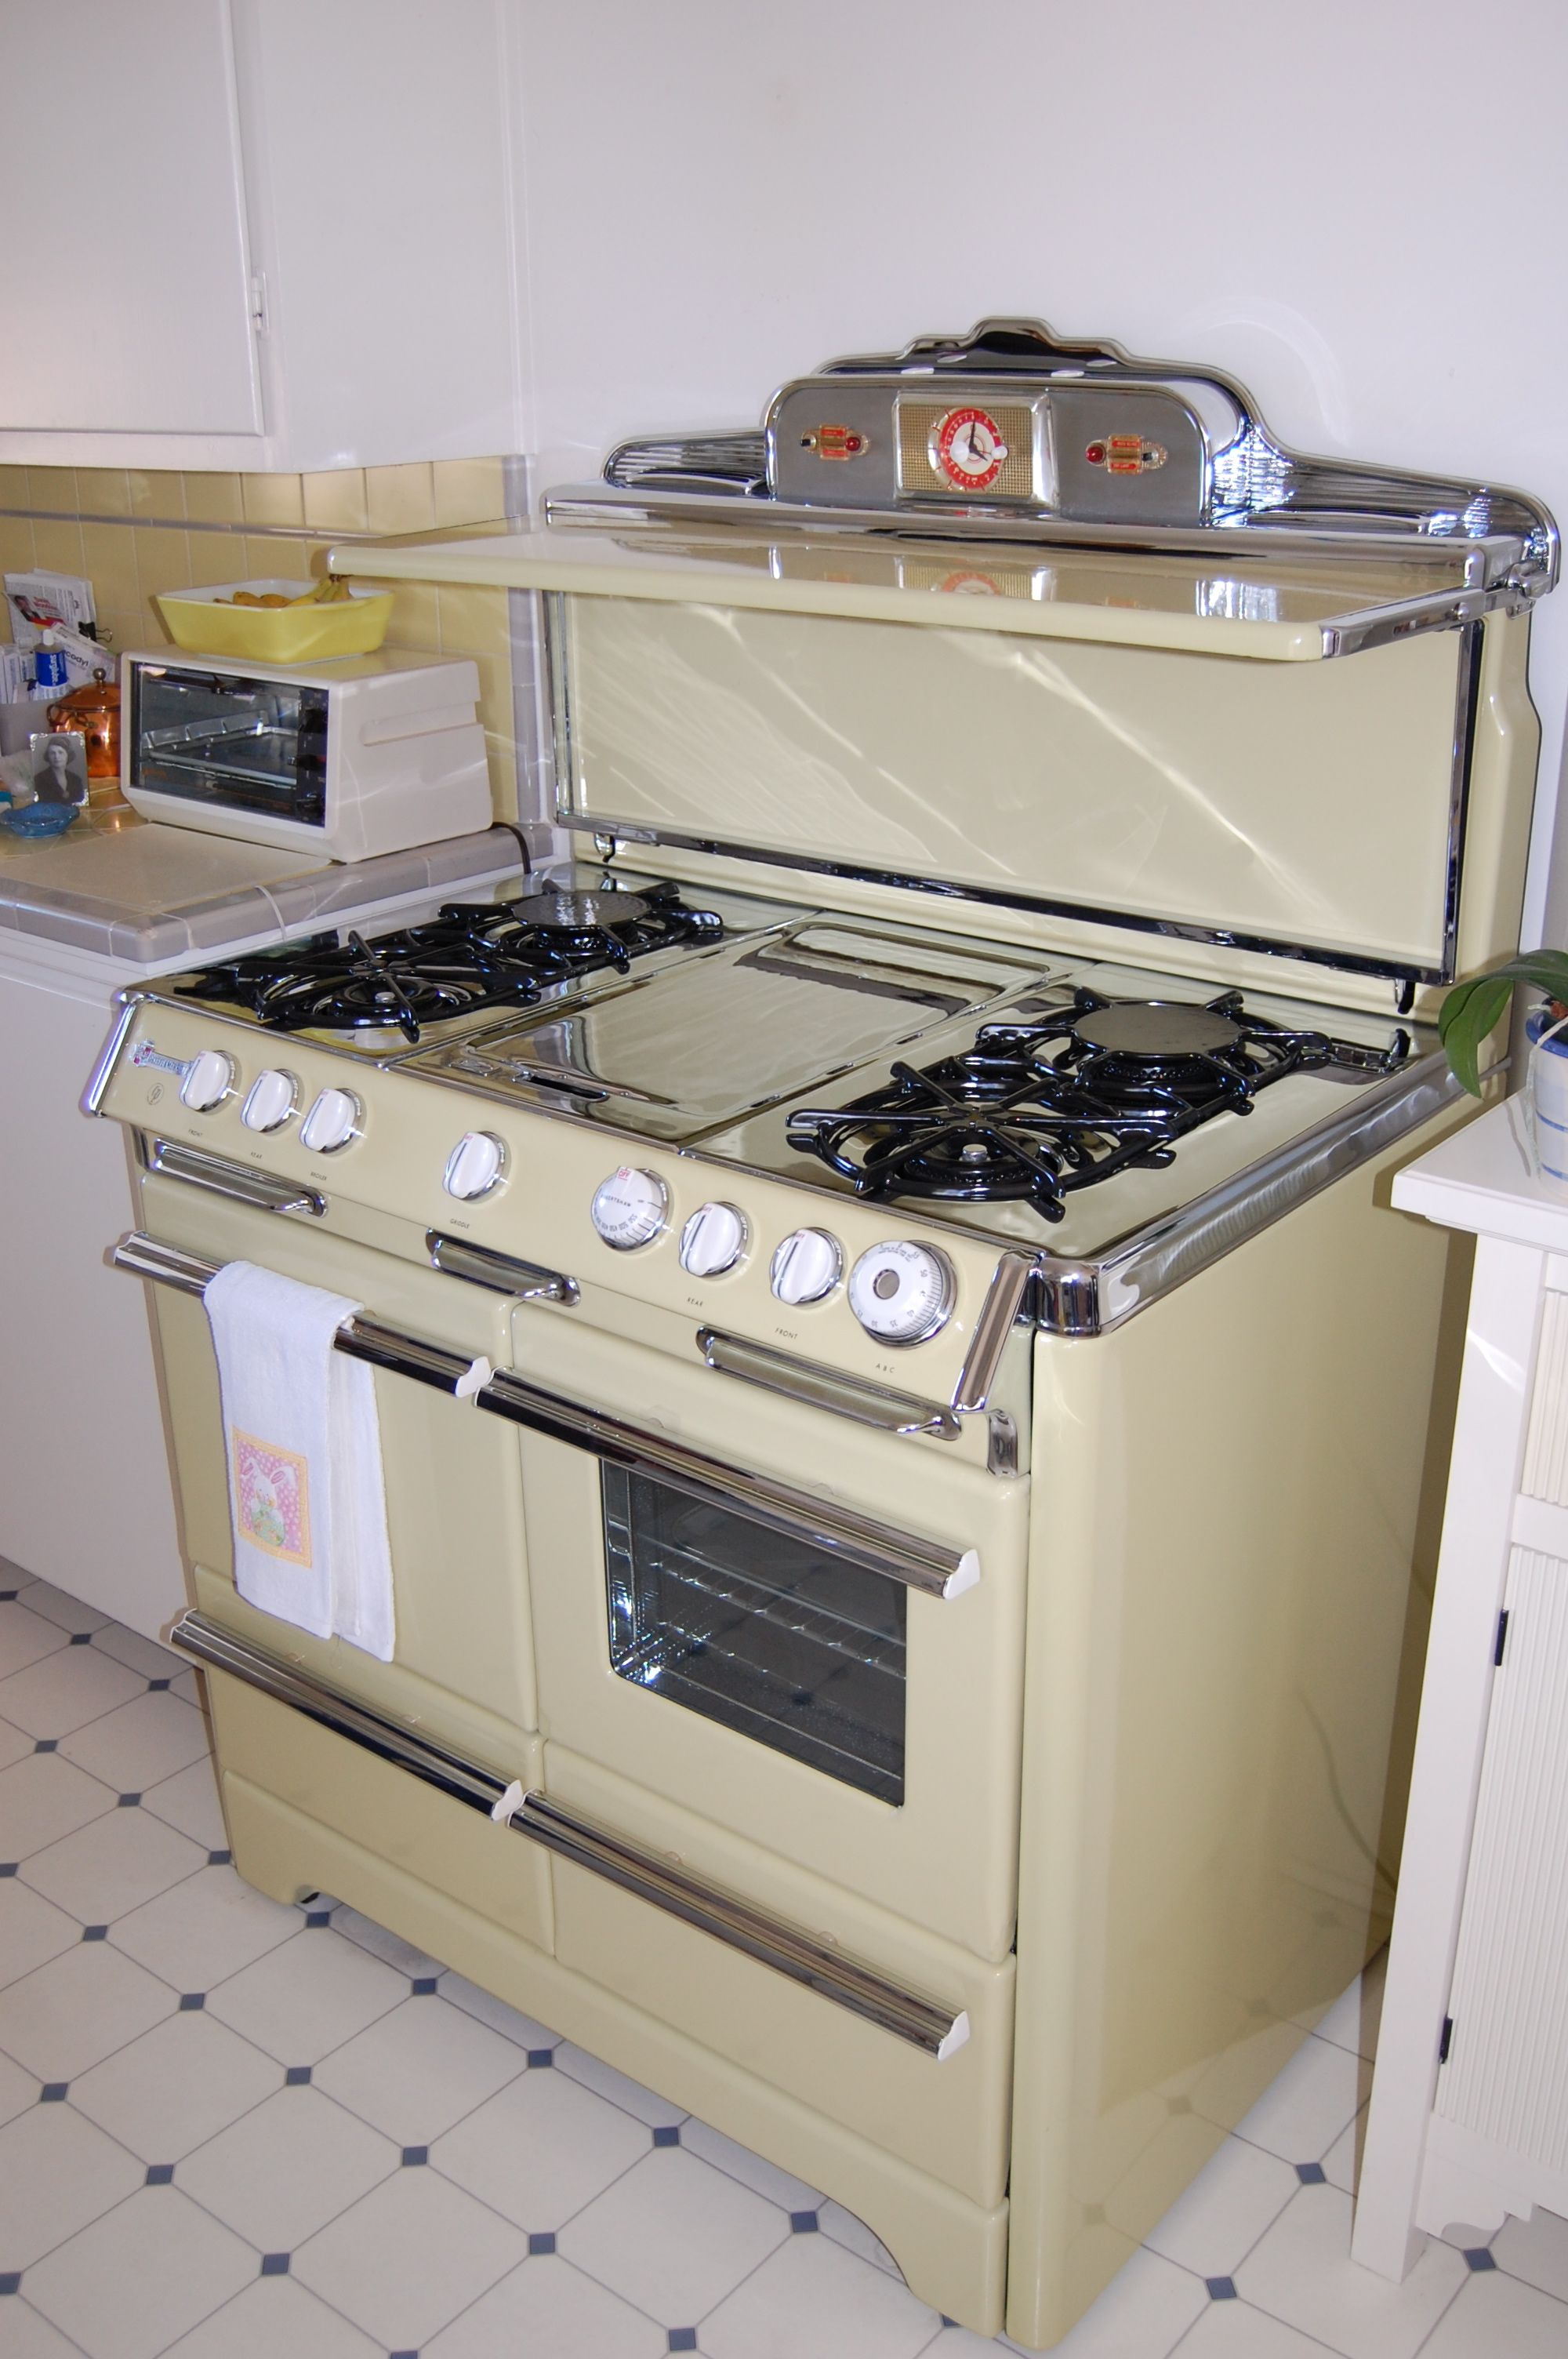 Retro Kitchen Stoves Aid Pans 1950s O 39keefe And Merritt Oven With Broiler Original